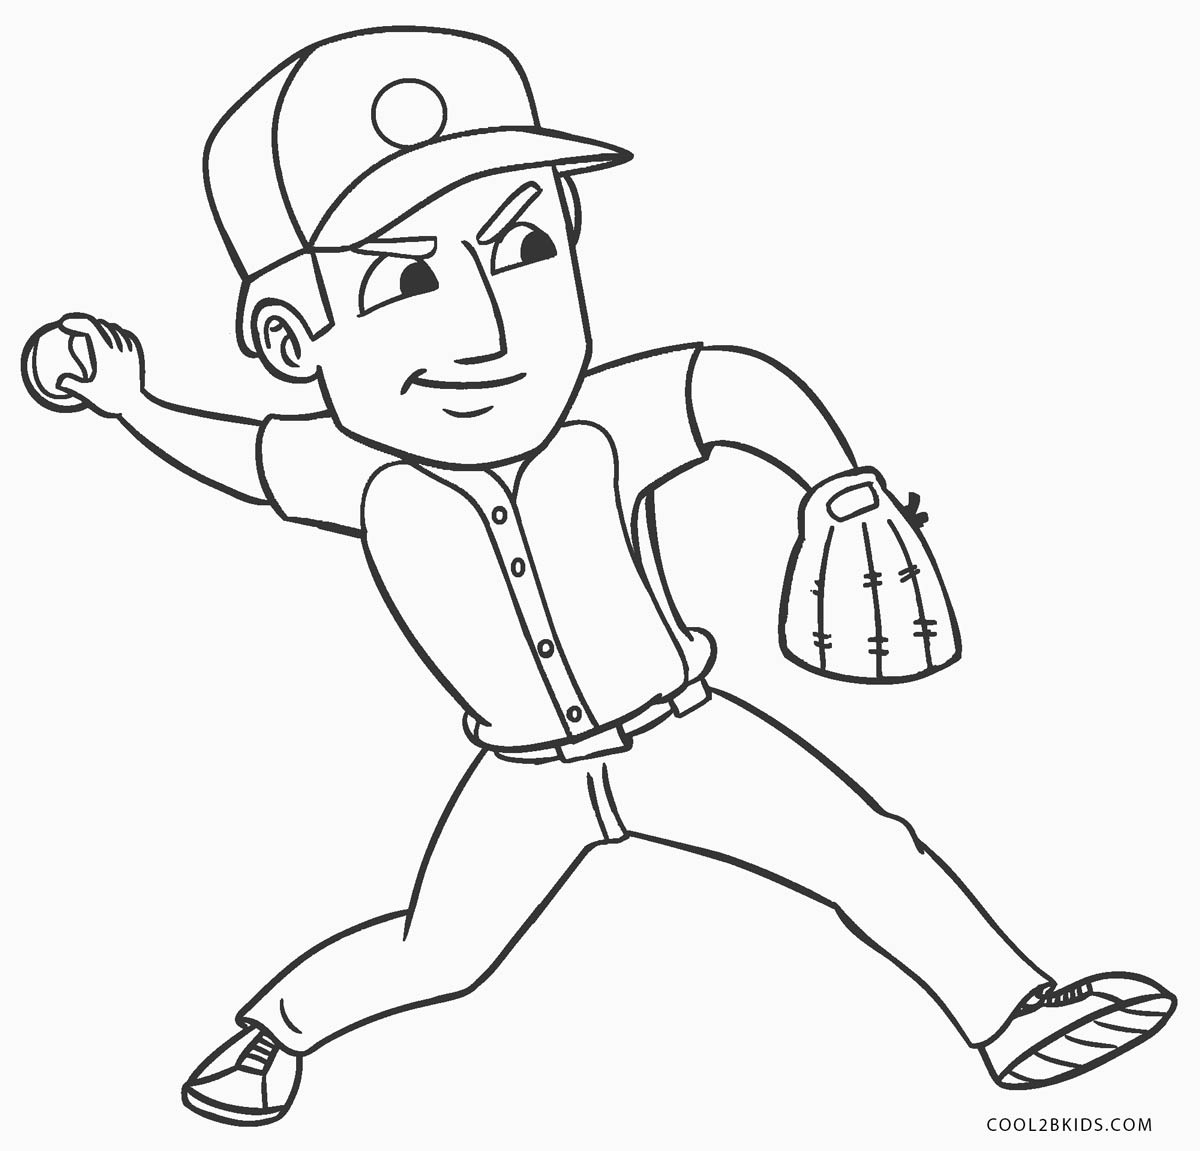 baseball player coloring pages baseball player coloring pages coloring pages to baseball coloring player pages